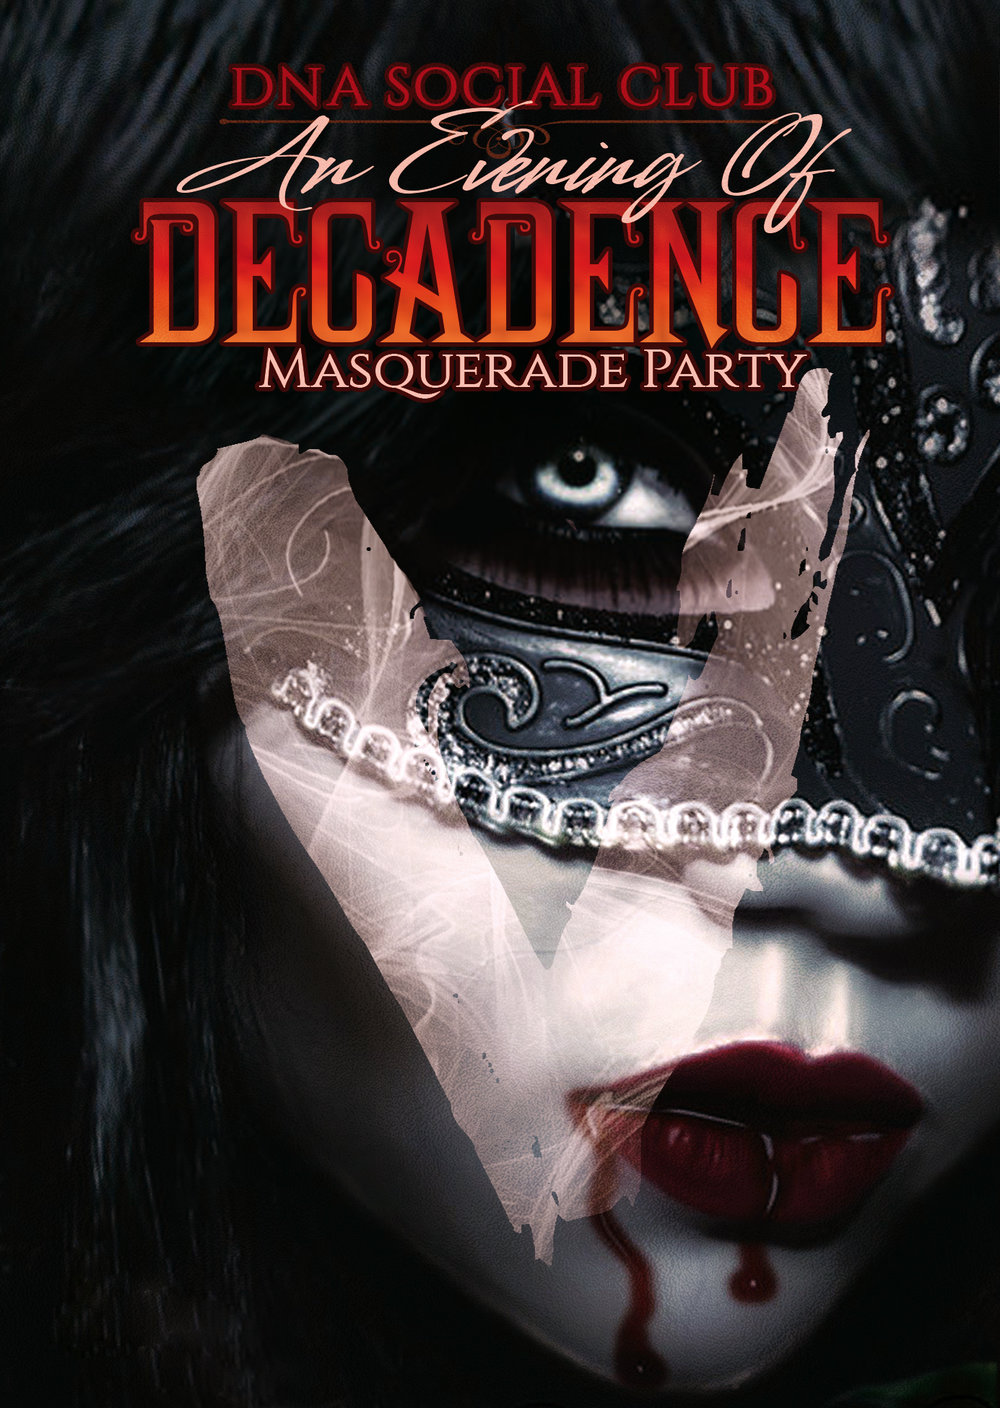 Decadence-5-BW-front.jpg